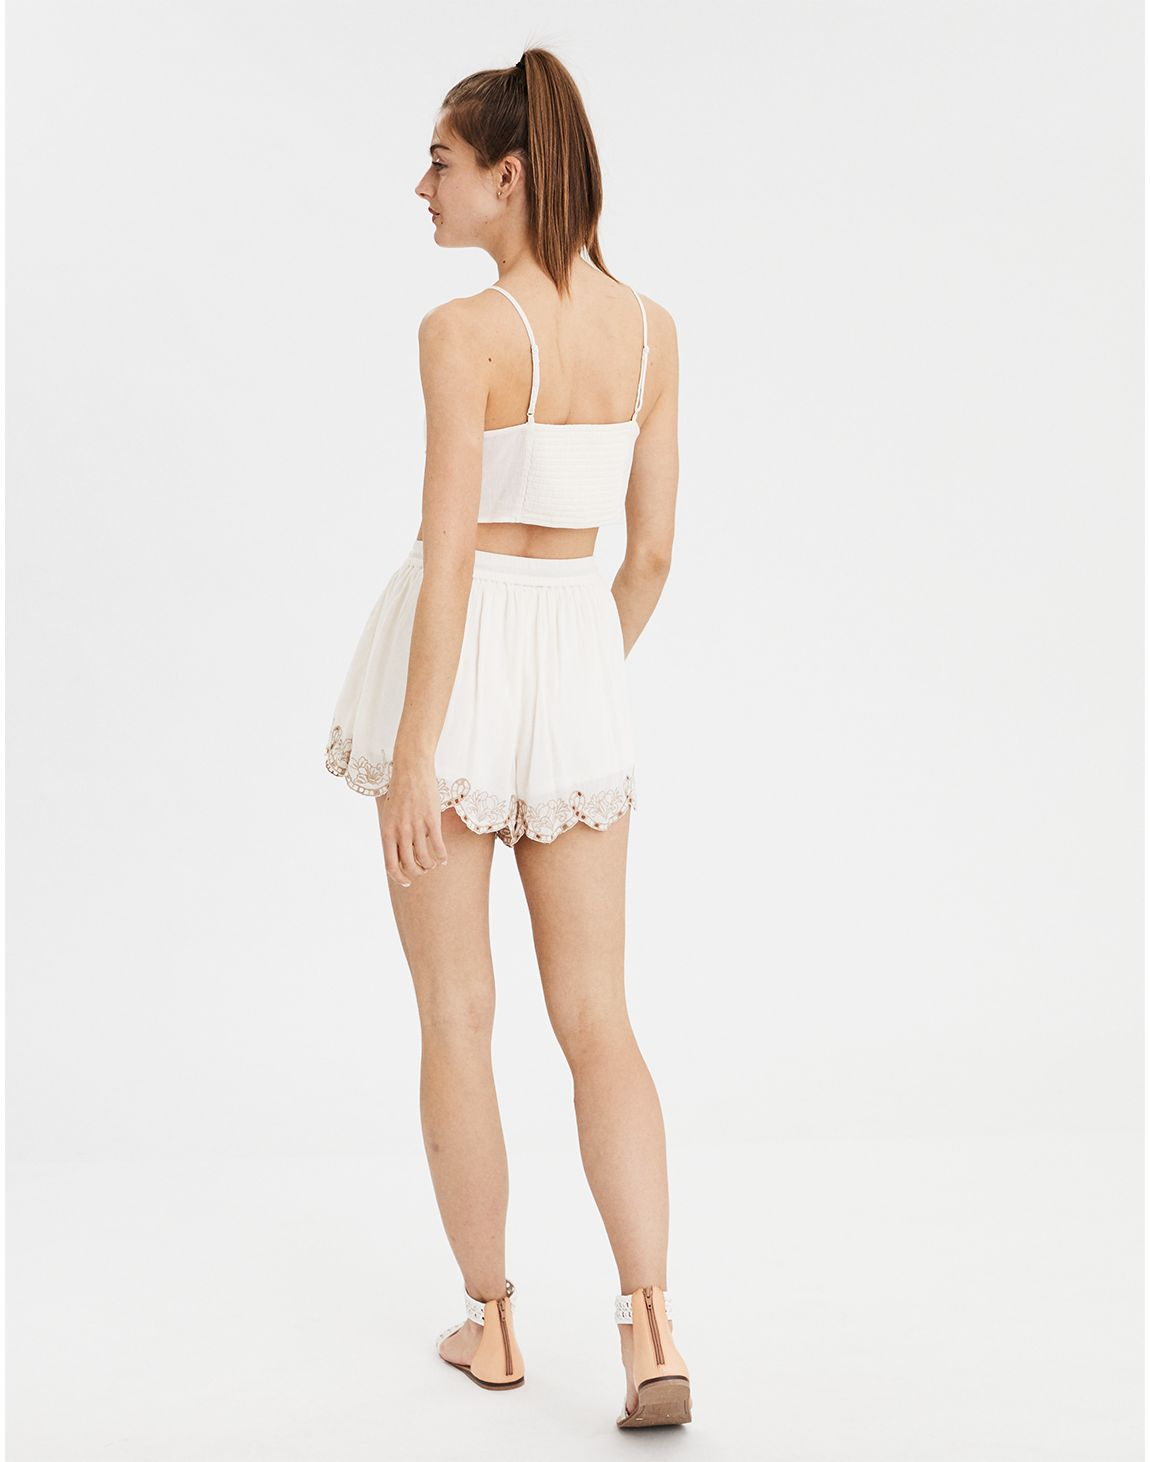 df4356ea5d7 American Eagle | AE Embroidered Corset Crop Top in White | American ...